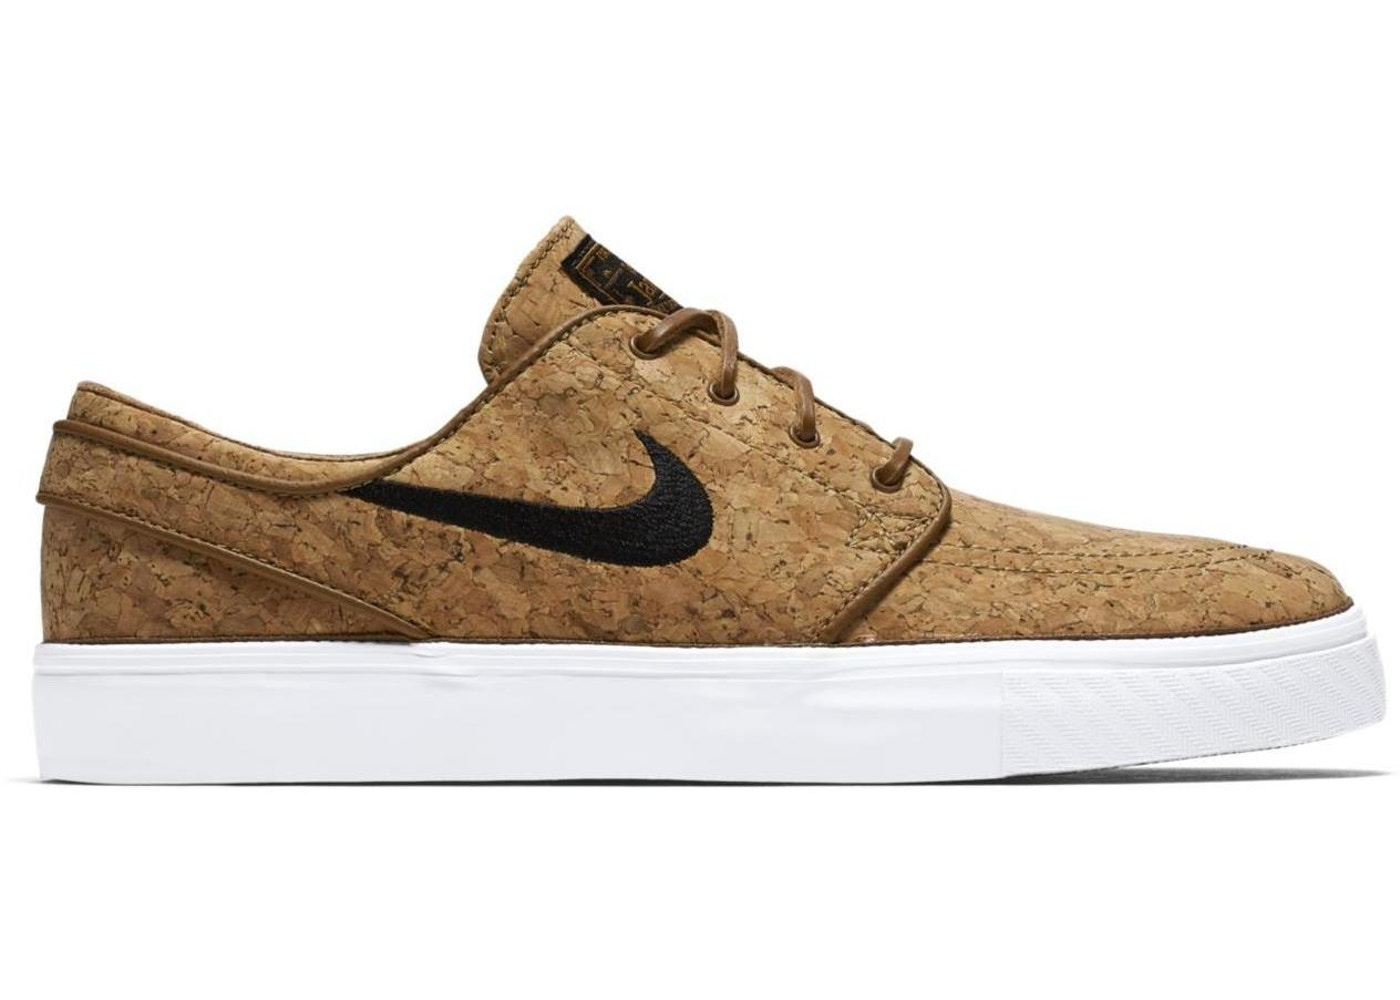 ナイキ NIKE エスビー ズーム エリート スニーカー 【 SB ZOOM STEFAN JANOSKI ELITE CORK ALE BROWN BLACK WHITE 】 メンズ